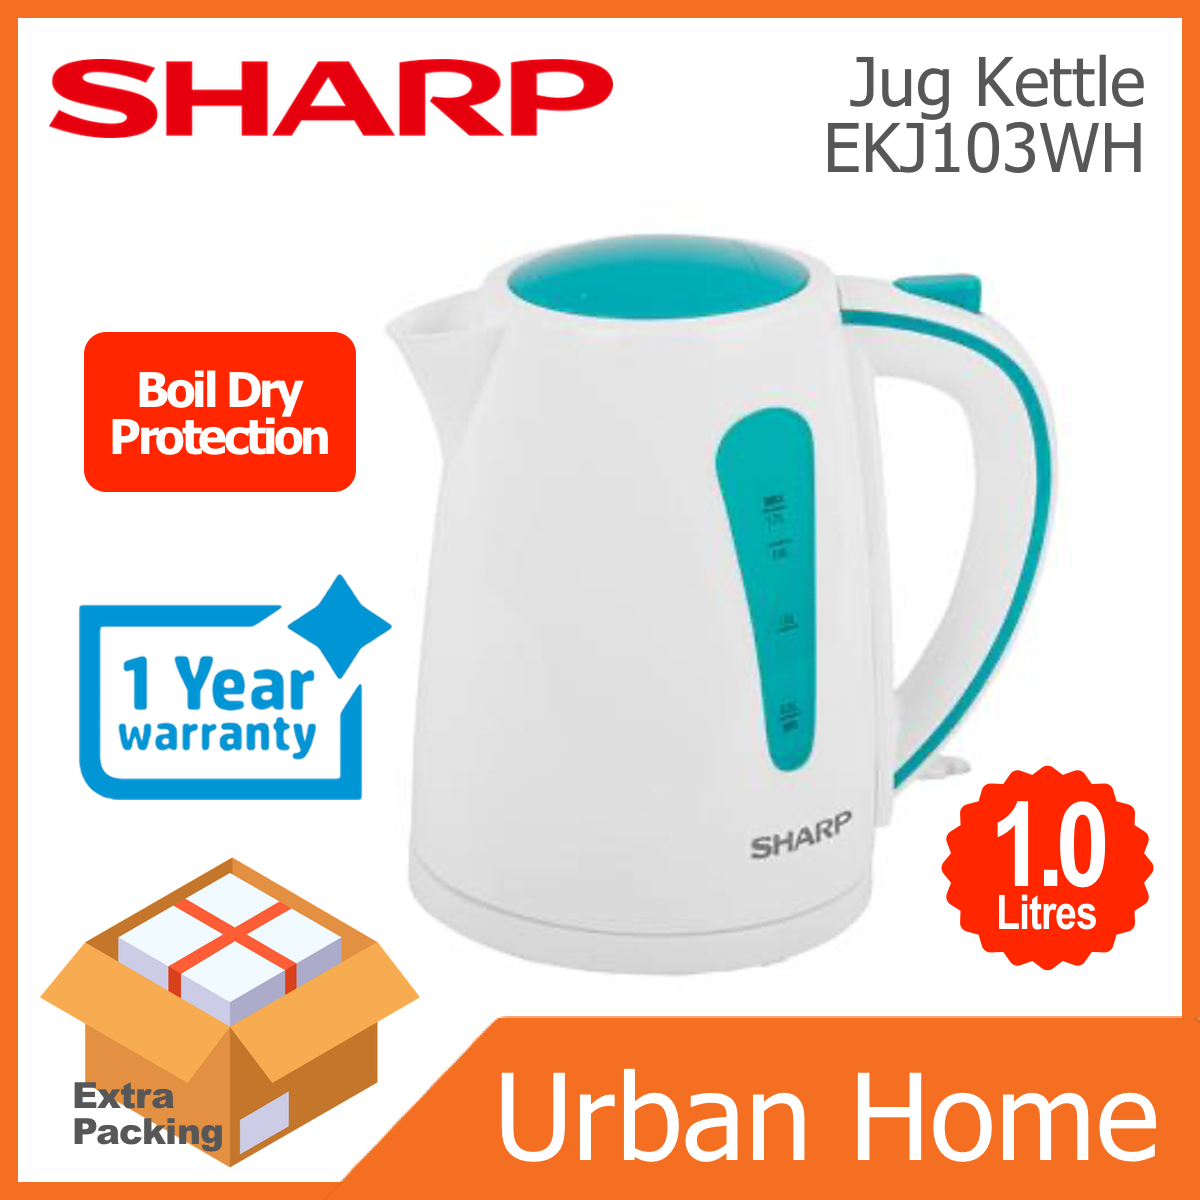 SHARP 1.0L Electric Jug Kettle Cerek with Boil Dry Protection (EKJ103WH)